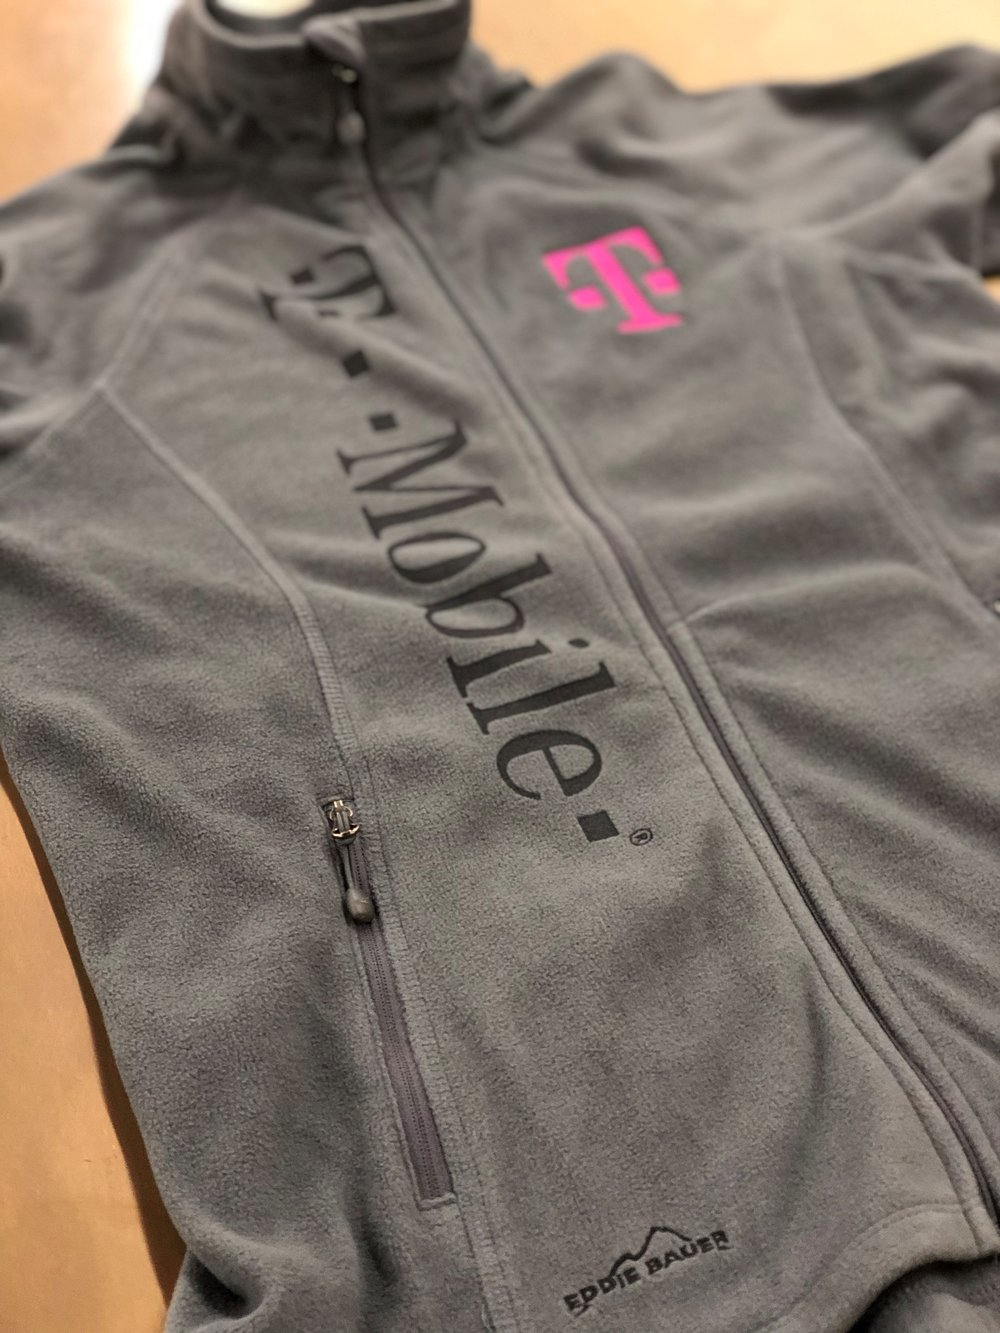 Embroidery and Laser Etching On Eddie Bauer Fleece Jacket for T-Mobile